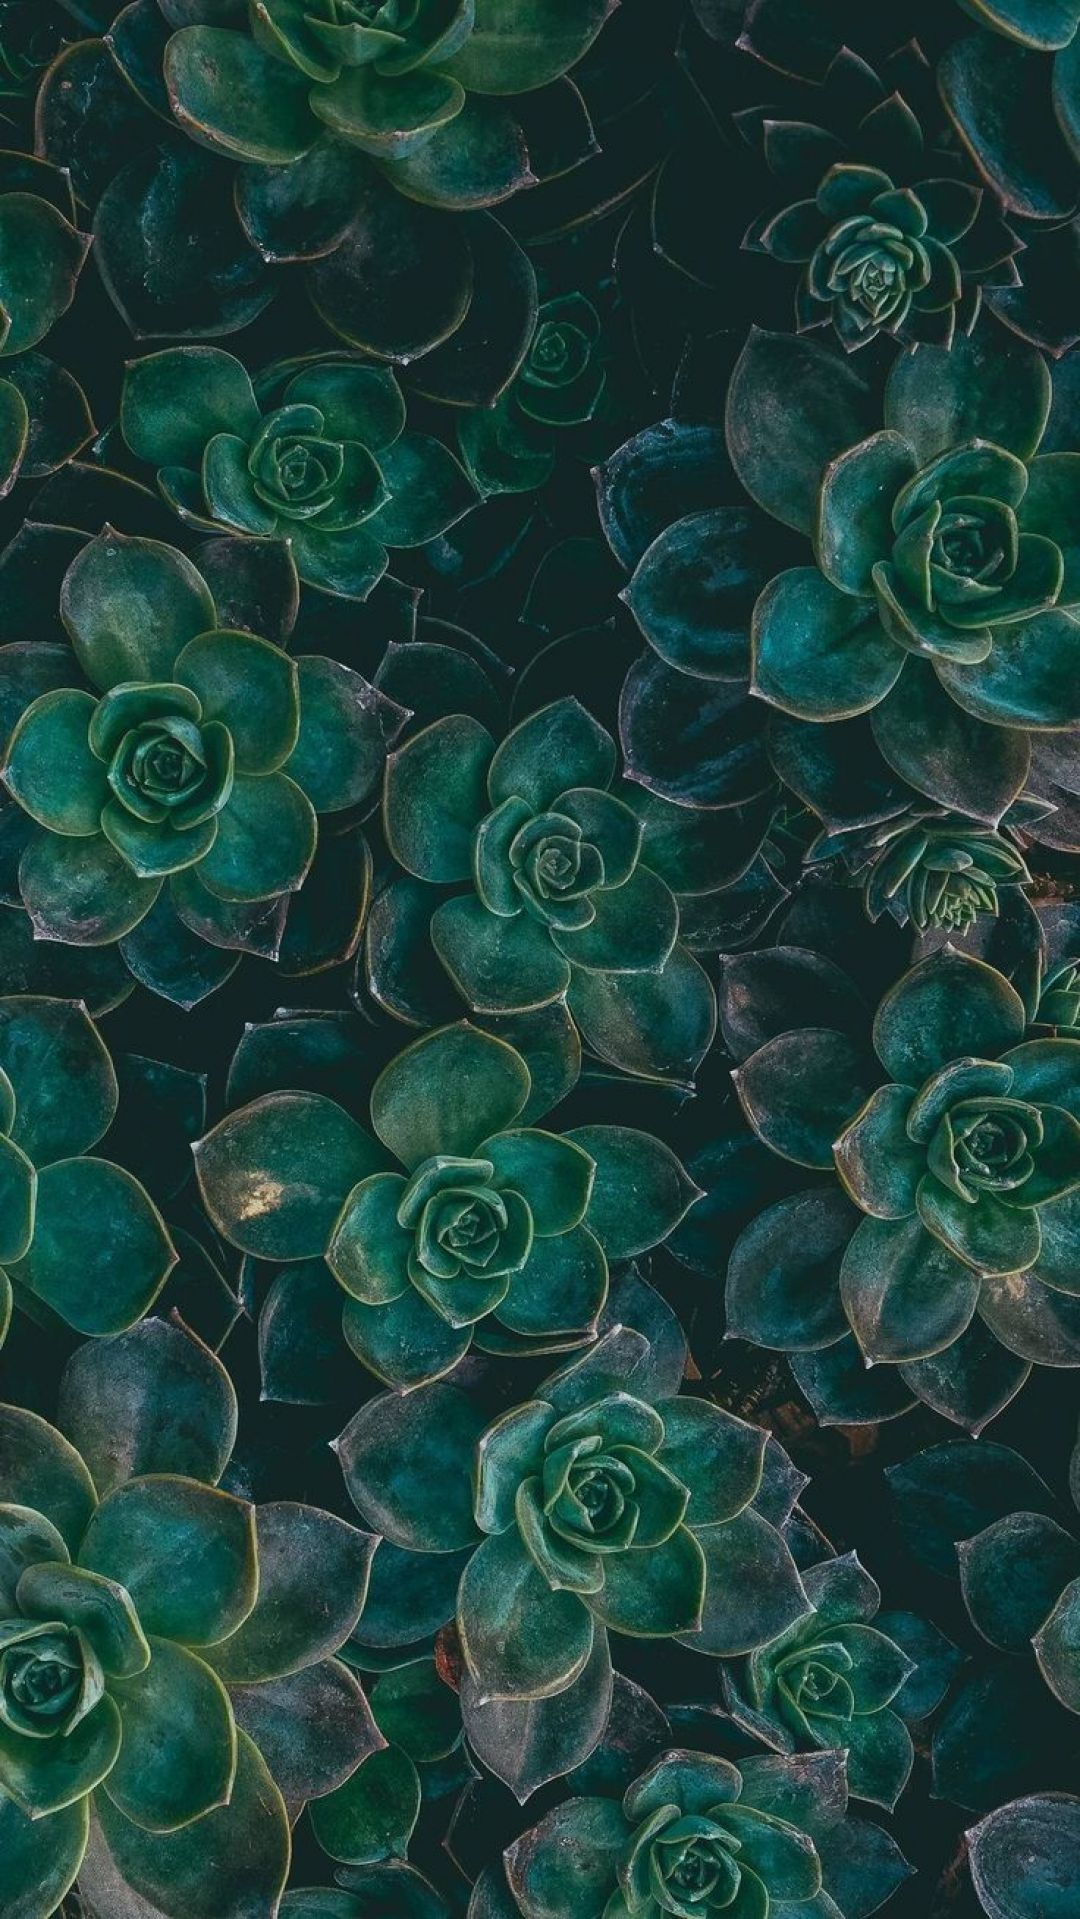 Wallpaper Aesthetic Green Background Hd